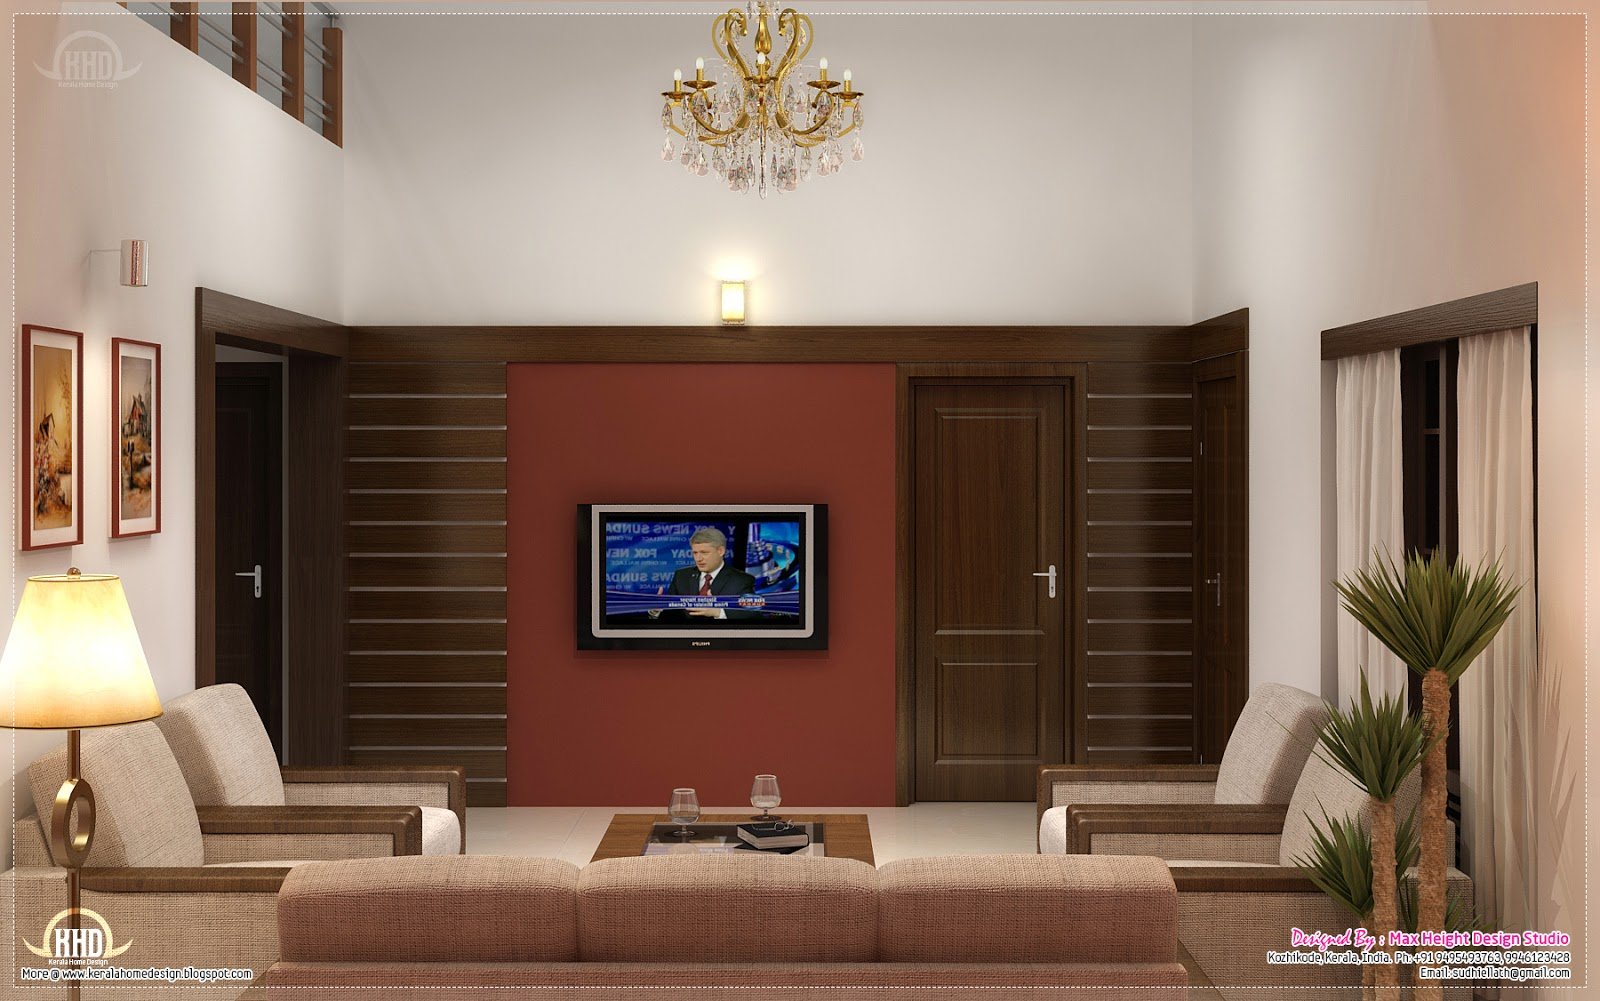 Kerala home interior design photos home design ideas Kerala homes interior design photos